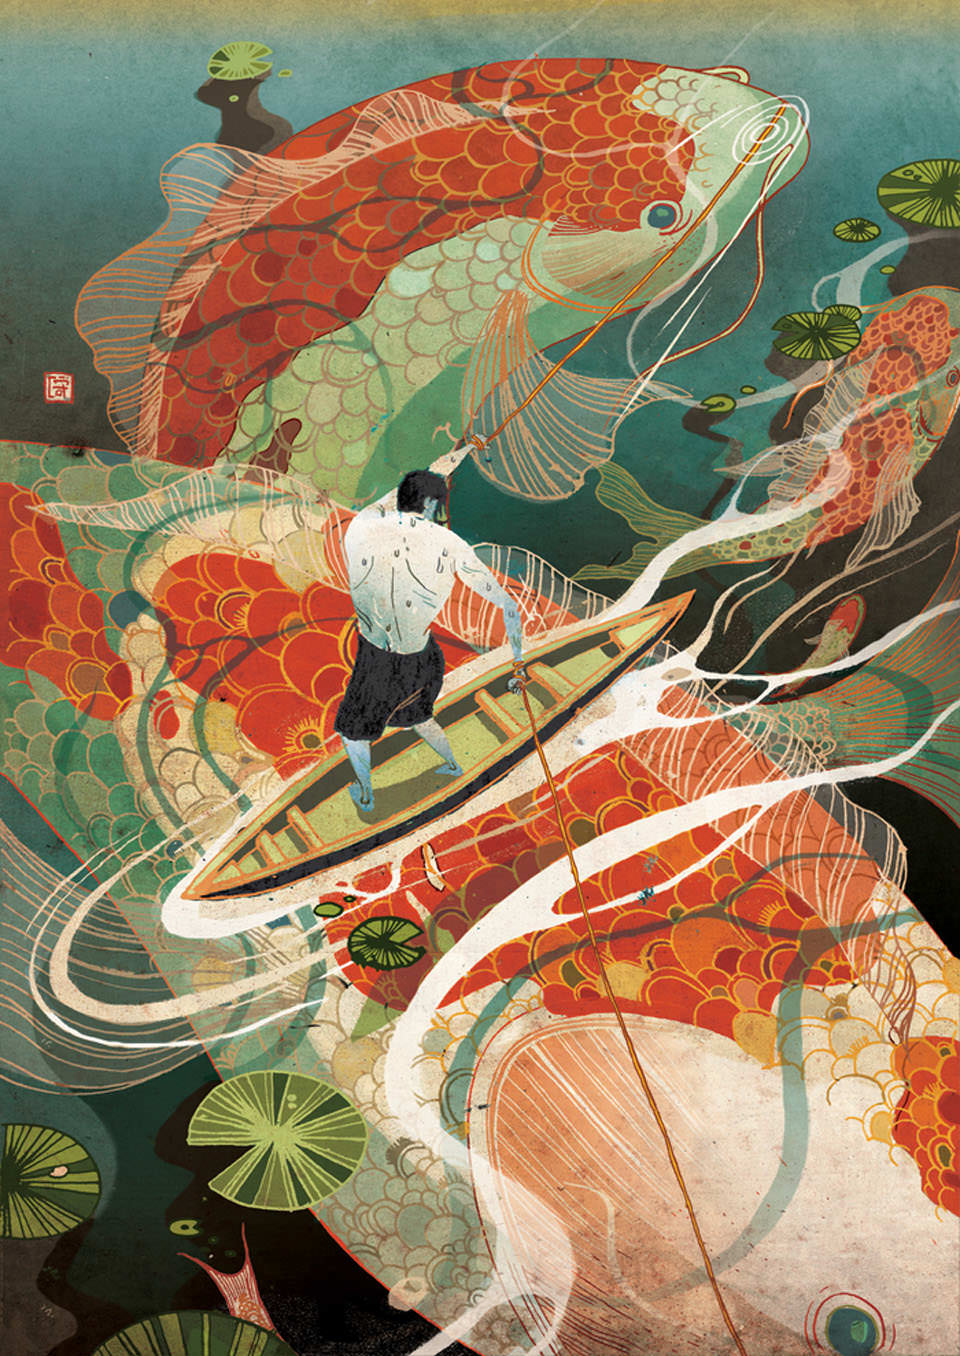 Victo Ngai Tough Choice cult illustration art cult stories arte illustrazione